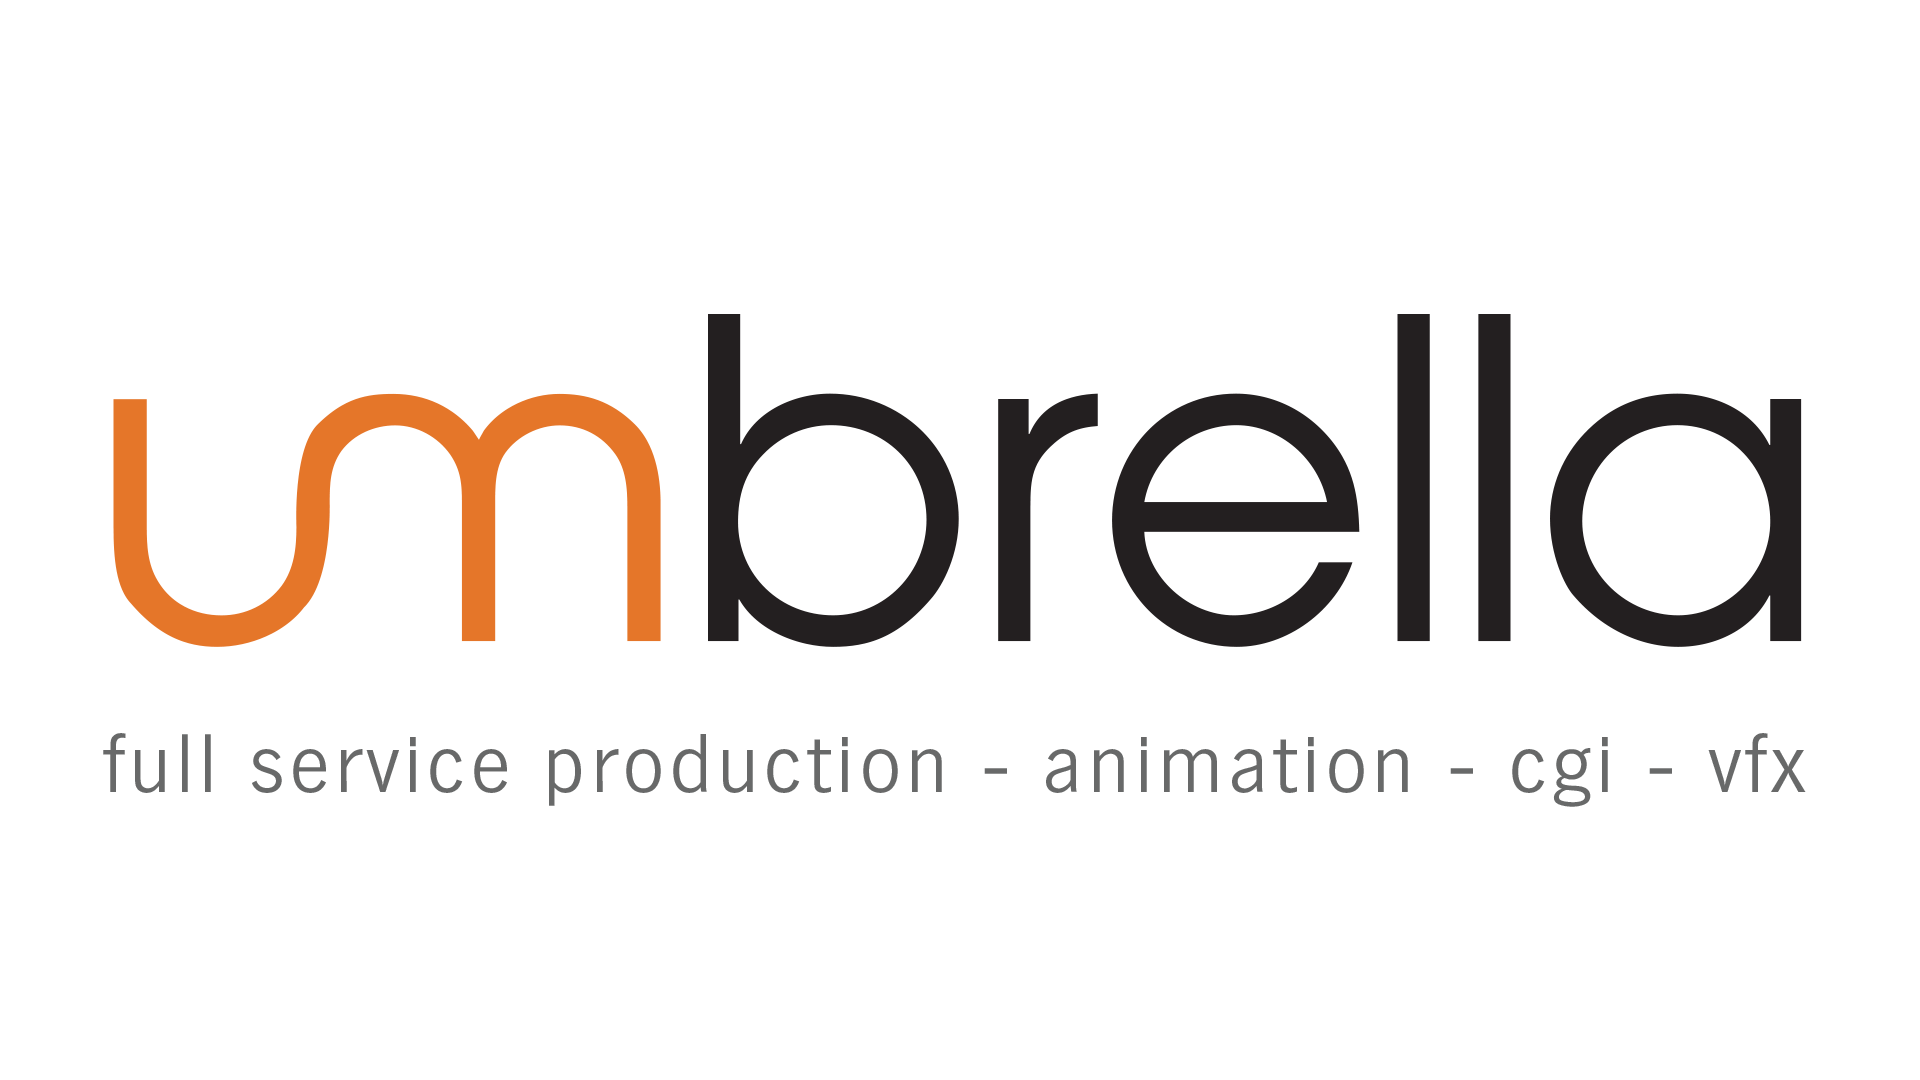 umbrella_logo_full_service.png